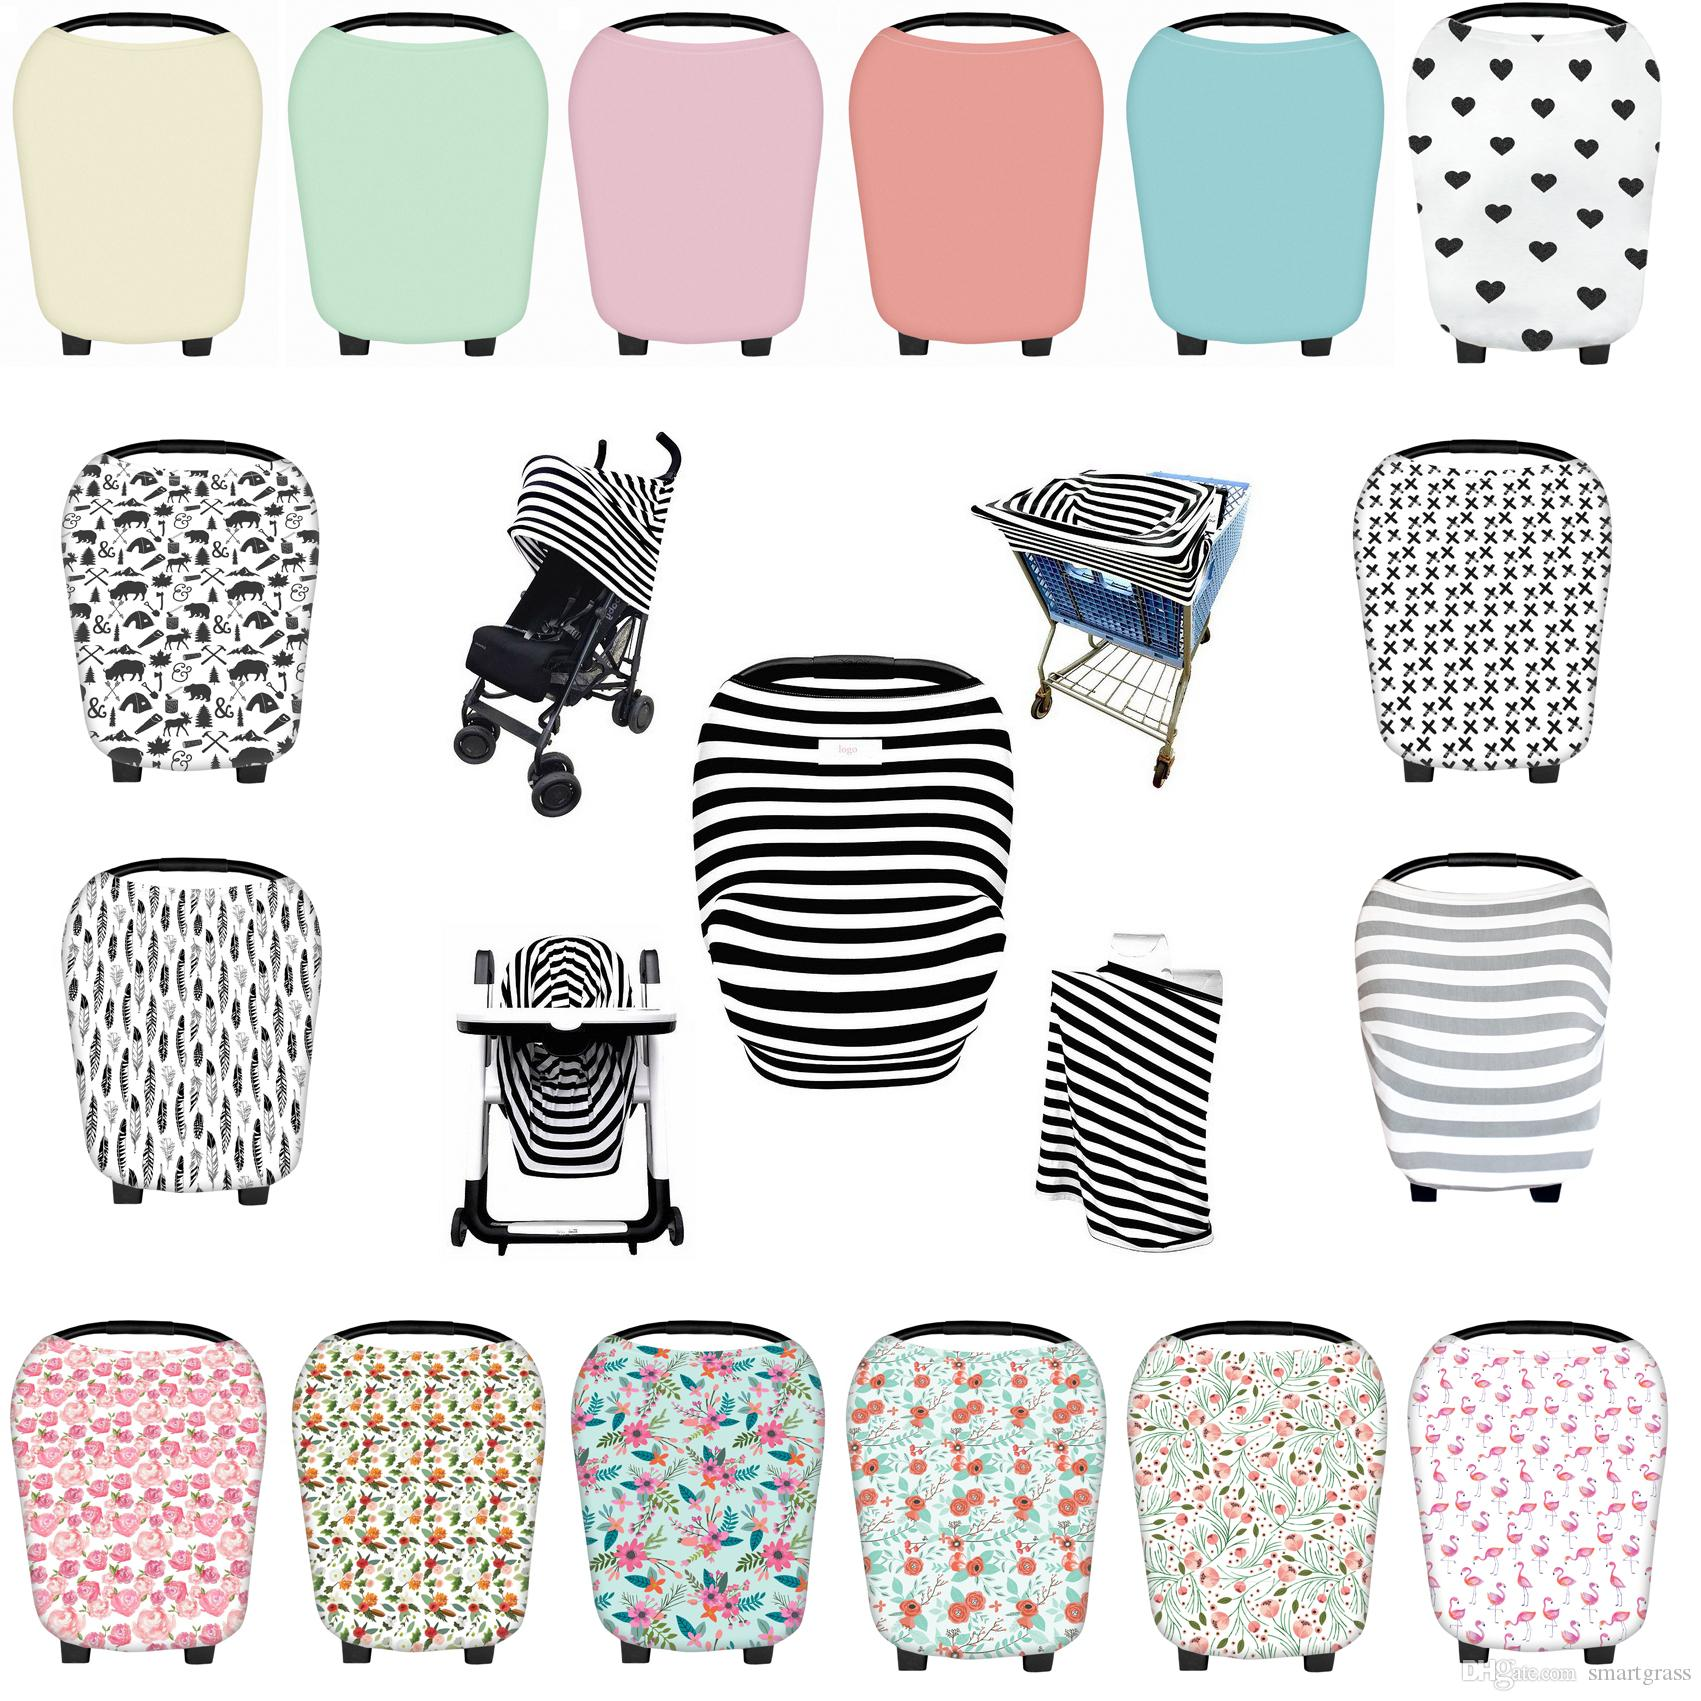 2017 29 patterns stroller covers feather printed baby car sets